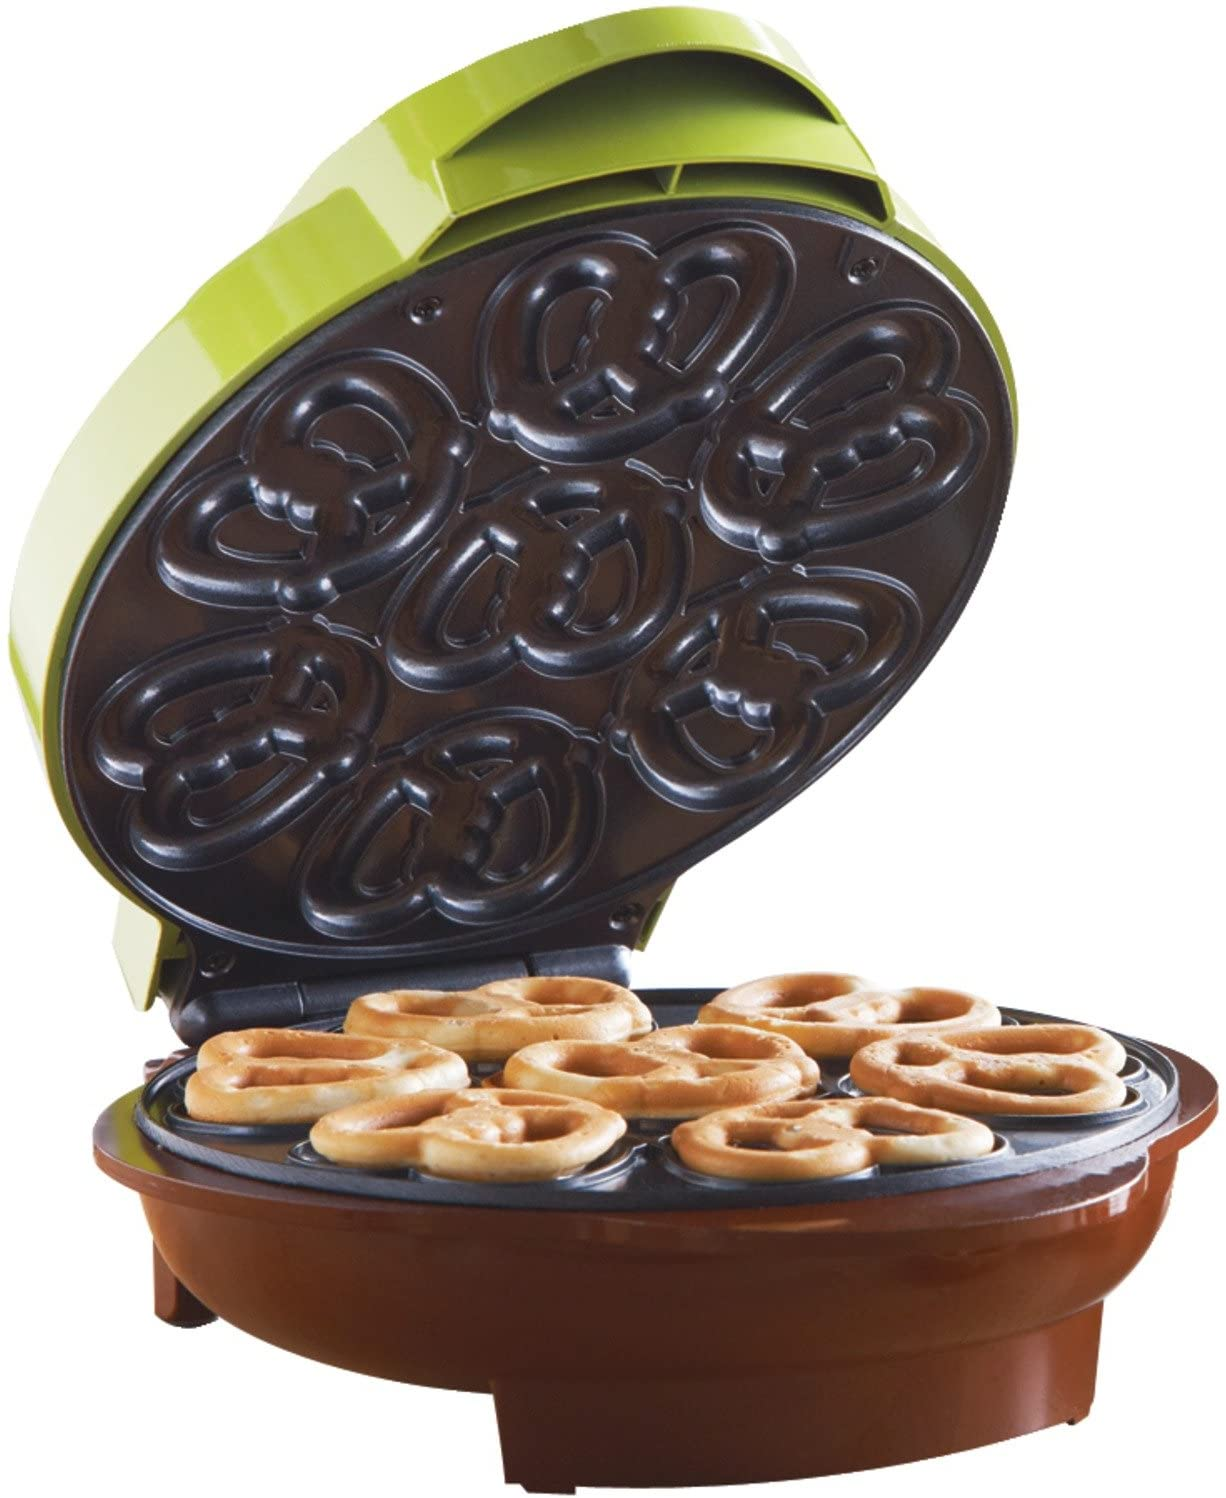 Brentwood Mini Pretzel Maker Machine Non-Stick, Green